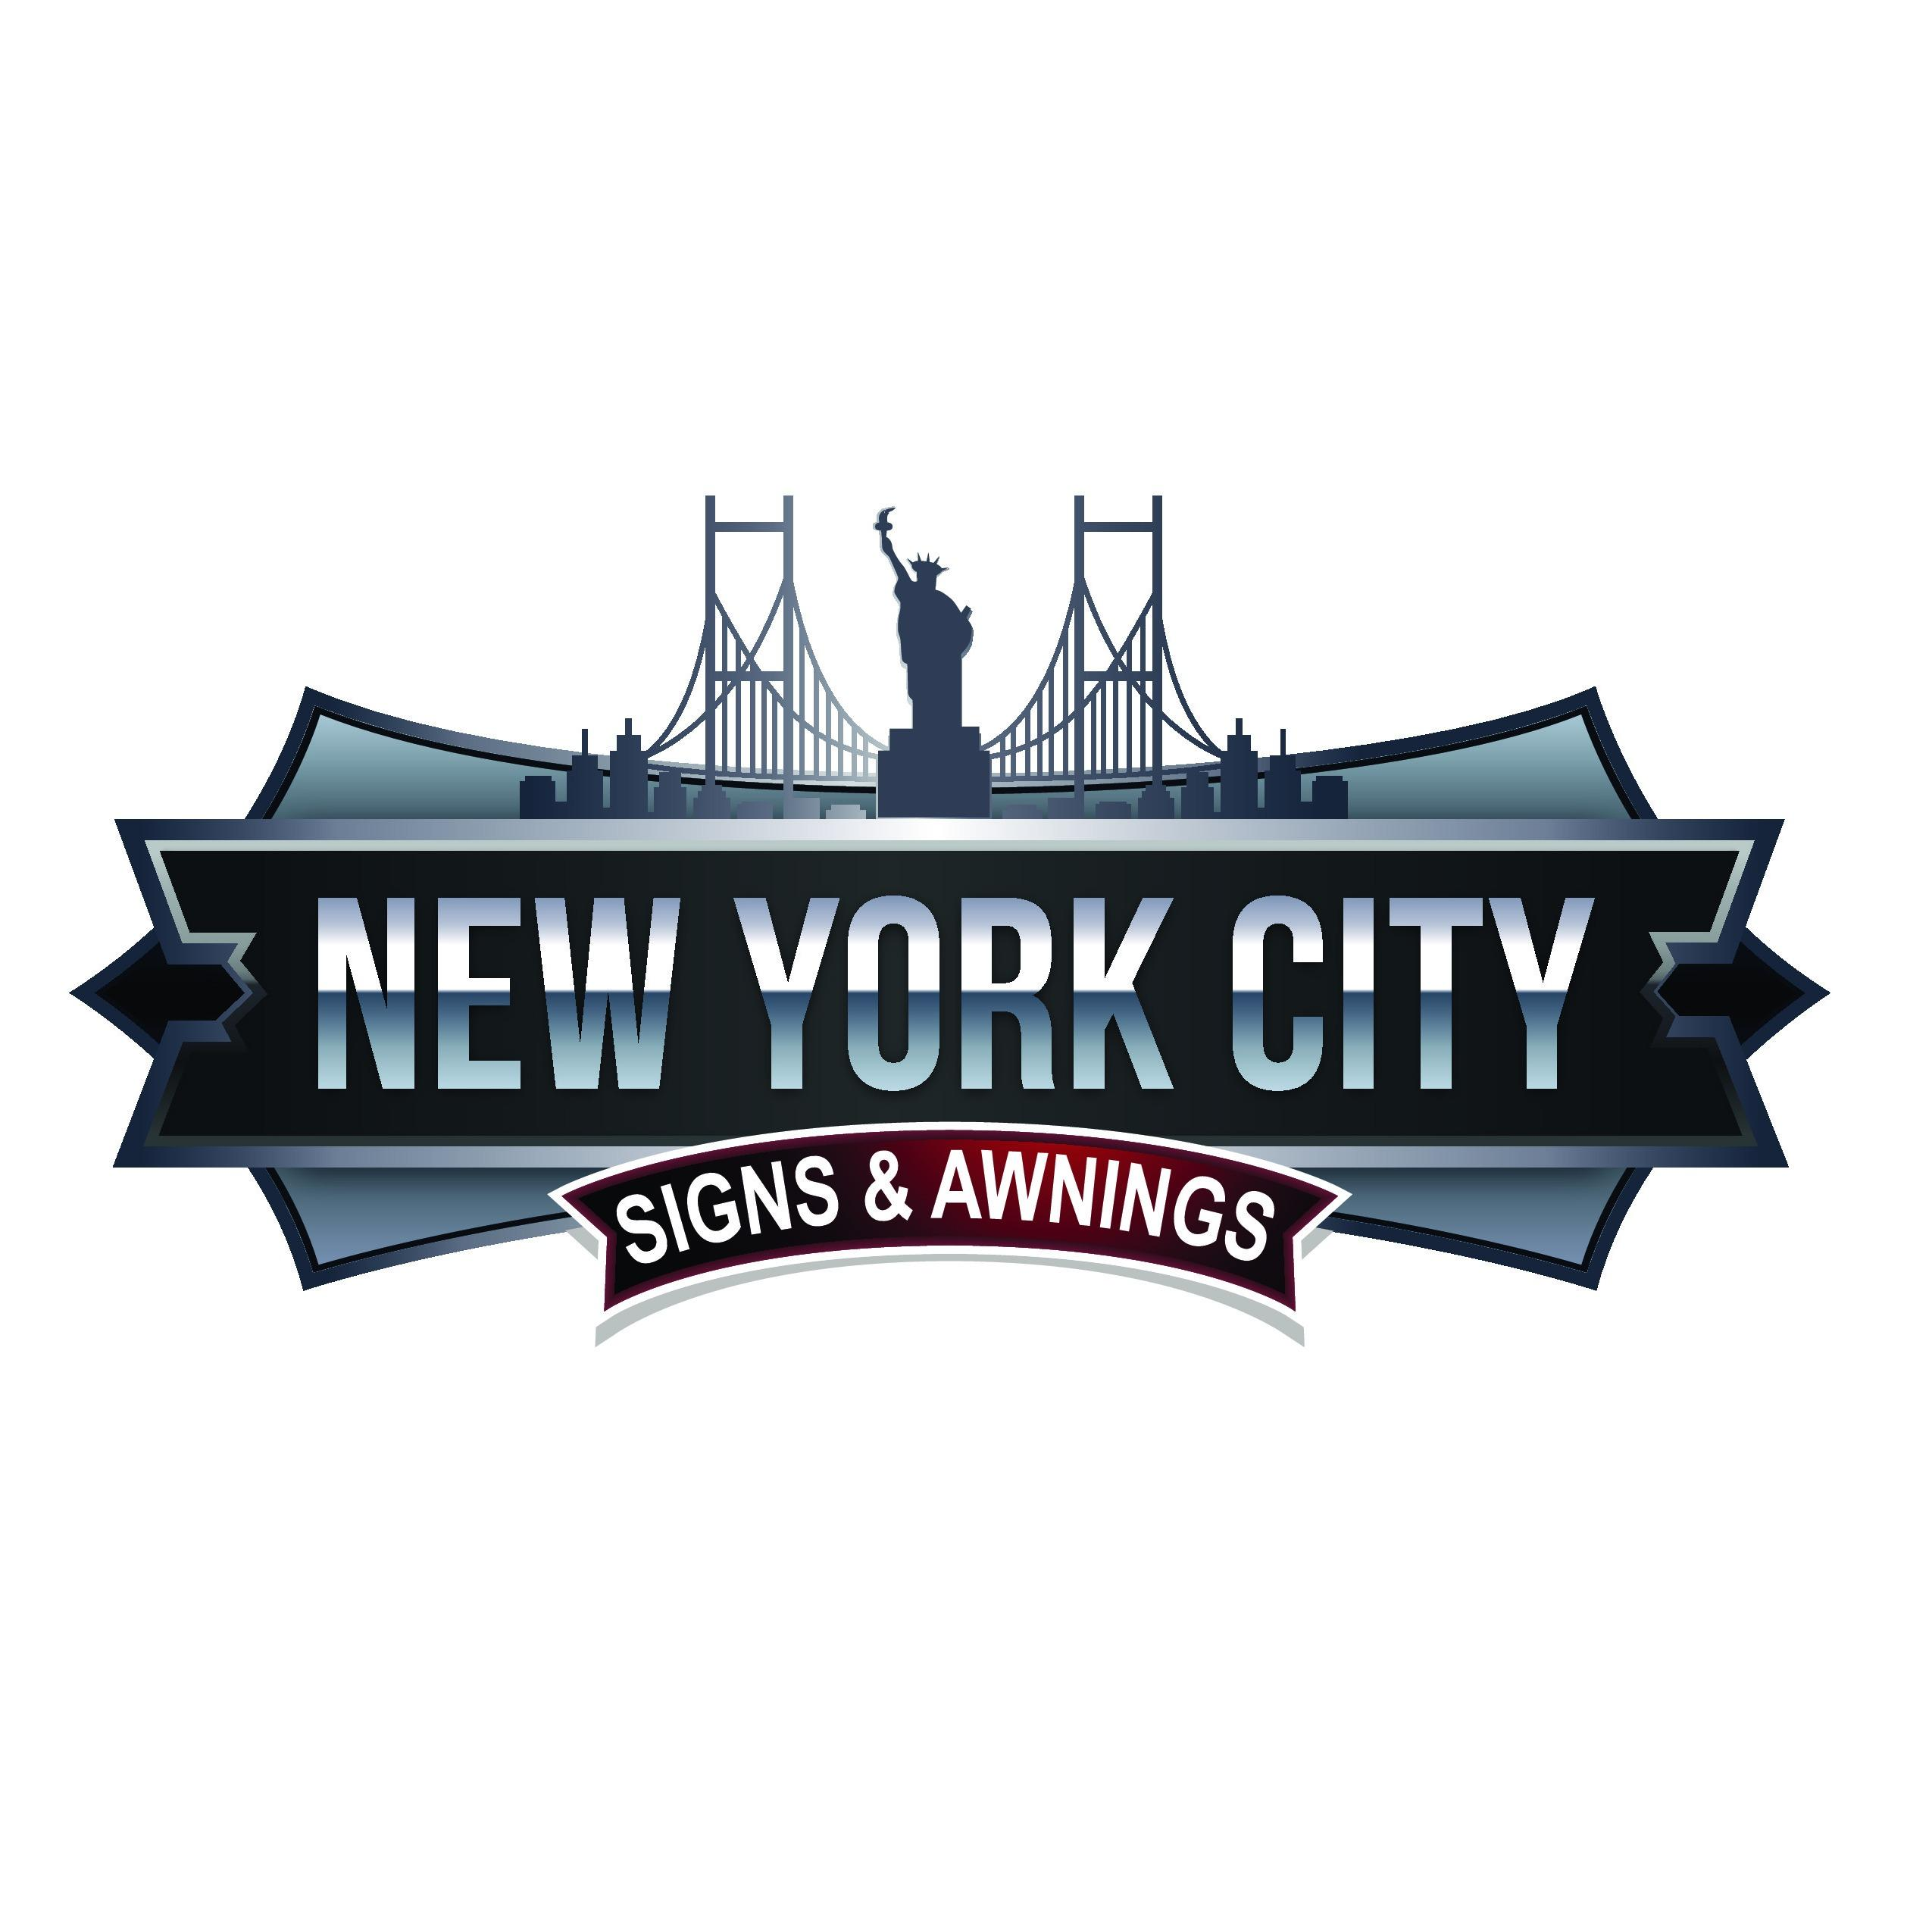 New York City Signs & Awnings image 0